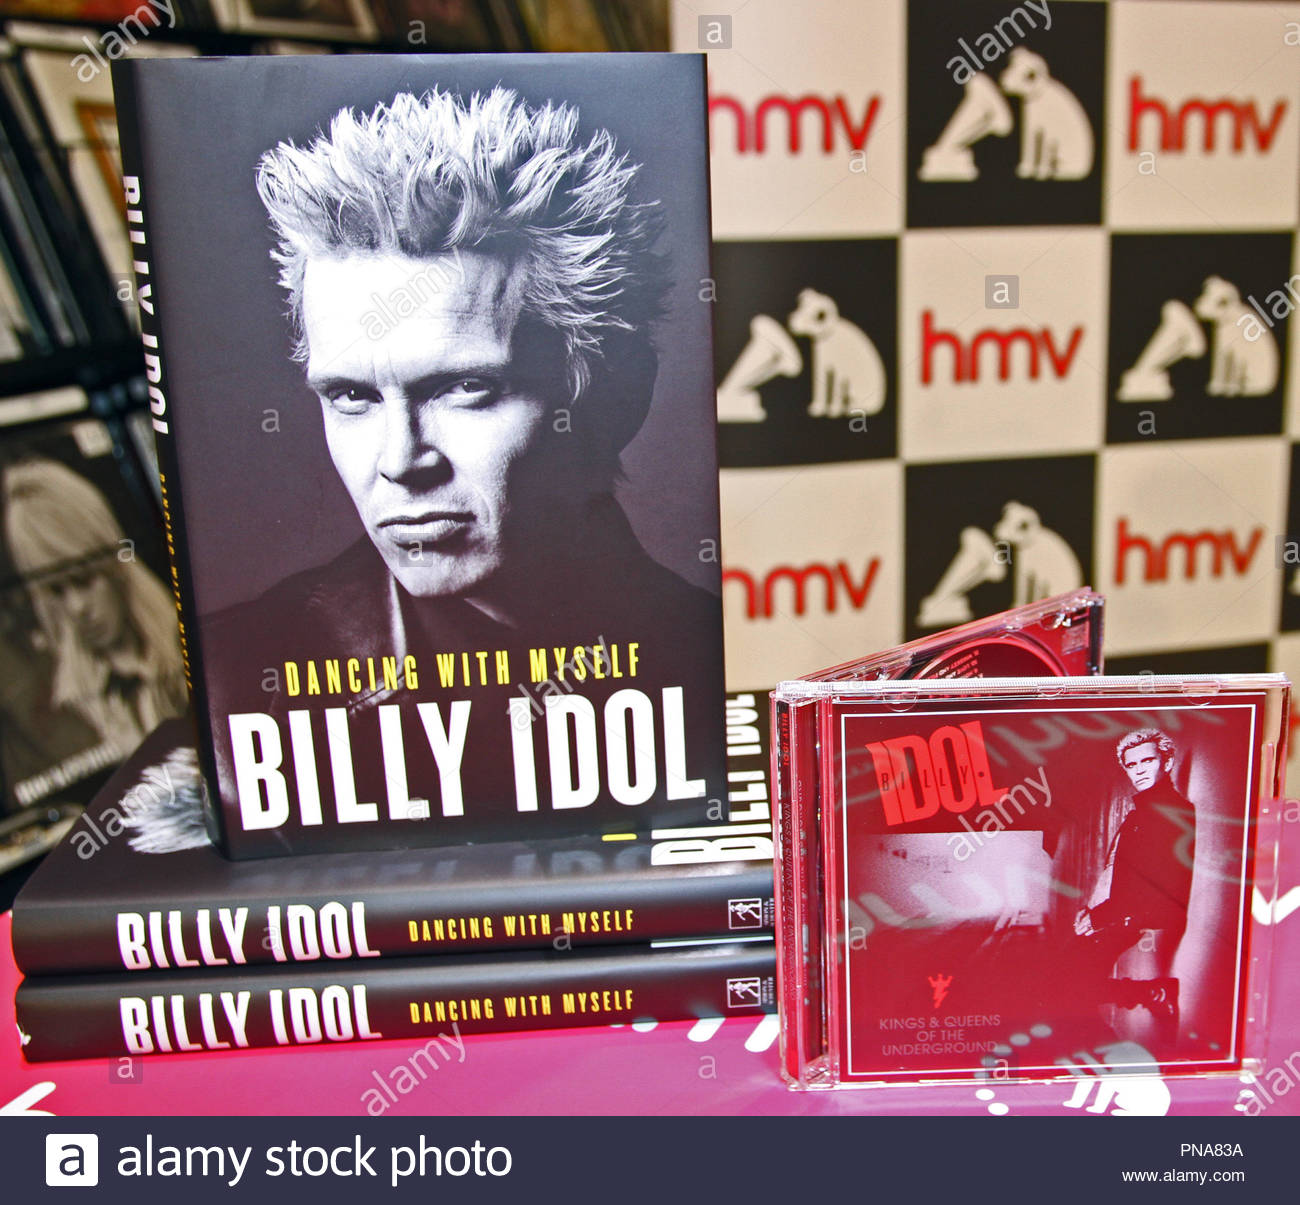 Billy Idol signing copies of his new autobiography 'Dancing